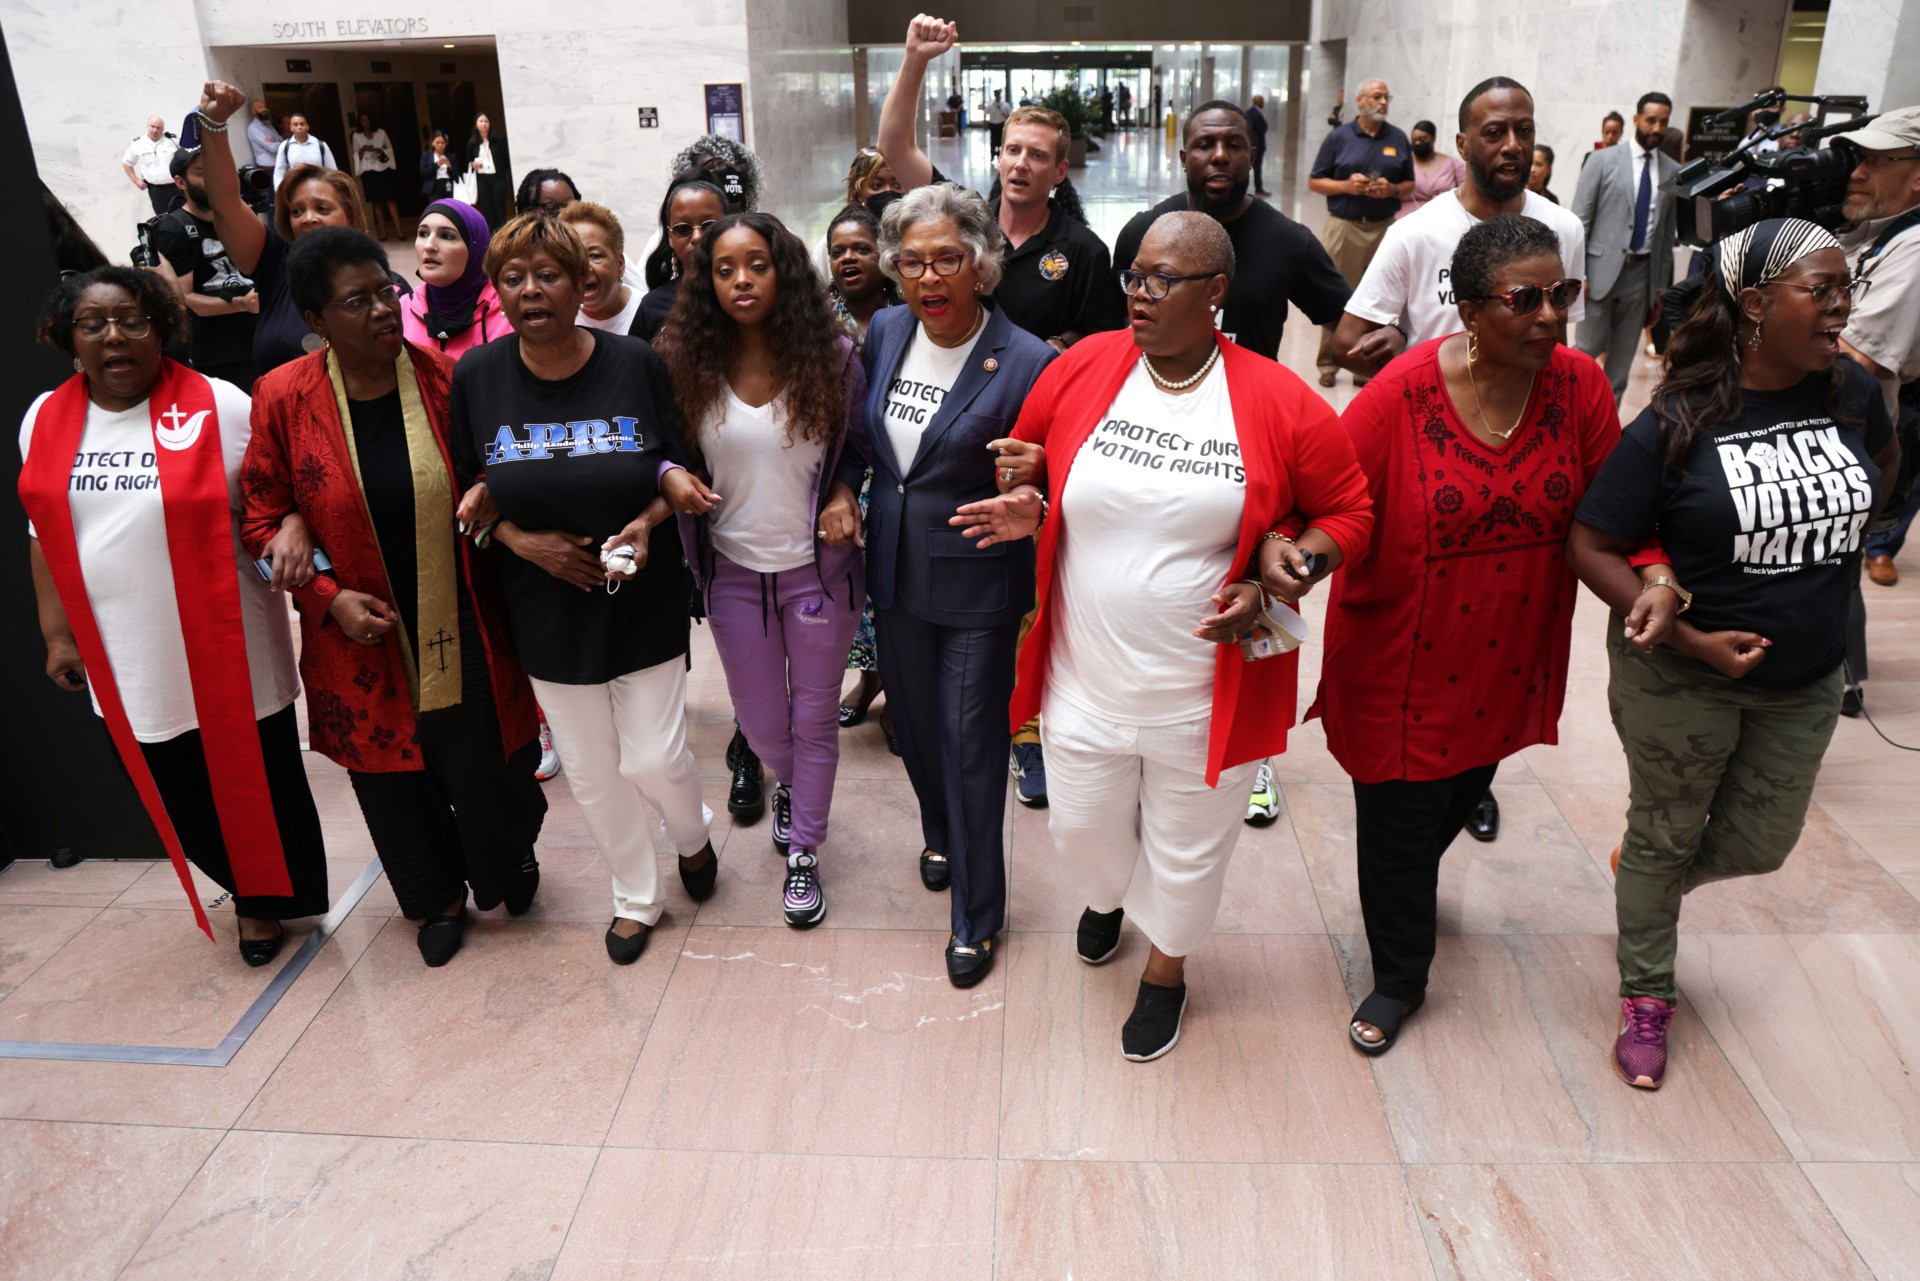 """WASHINGTON, DC - JULY 15: Voting Rights activists, led by U.S. Rep. Joyce Beatty (D-OH) (C) and Chair of Congressional Black Caucus (CBC), stage a protest at Hart Senate Office Building July 15, 2021 on Capitol Hill in Washington, DC. The activists participate in a civil disobedience in response to """"numerous voter restriction laws being passed in states across the country, as well as Senate Republicans' refusal to engage meaningfully in drafting federal legislation to ensure that every American has equal access and opportunity to vote."""" (Photo by Alex Wong/Getty Images)"""